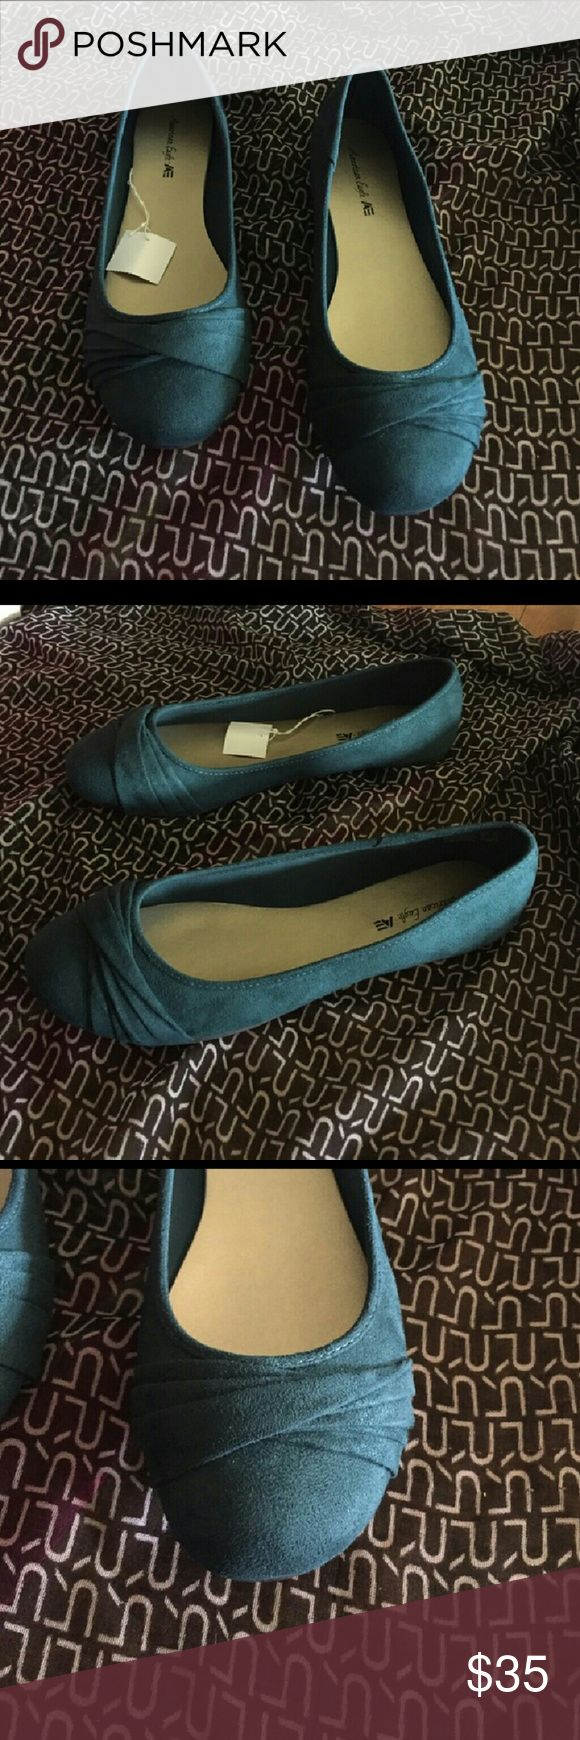 13 size...TEAL SUEDE TWISTED SLIPPER...SALE! Soft comfortable...brand new..never worn....WEEKEND SALE!!!#😁 Shoes Flats & Loafers